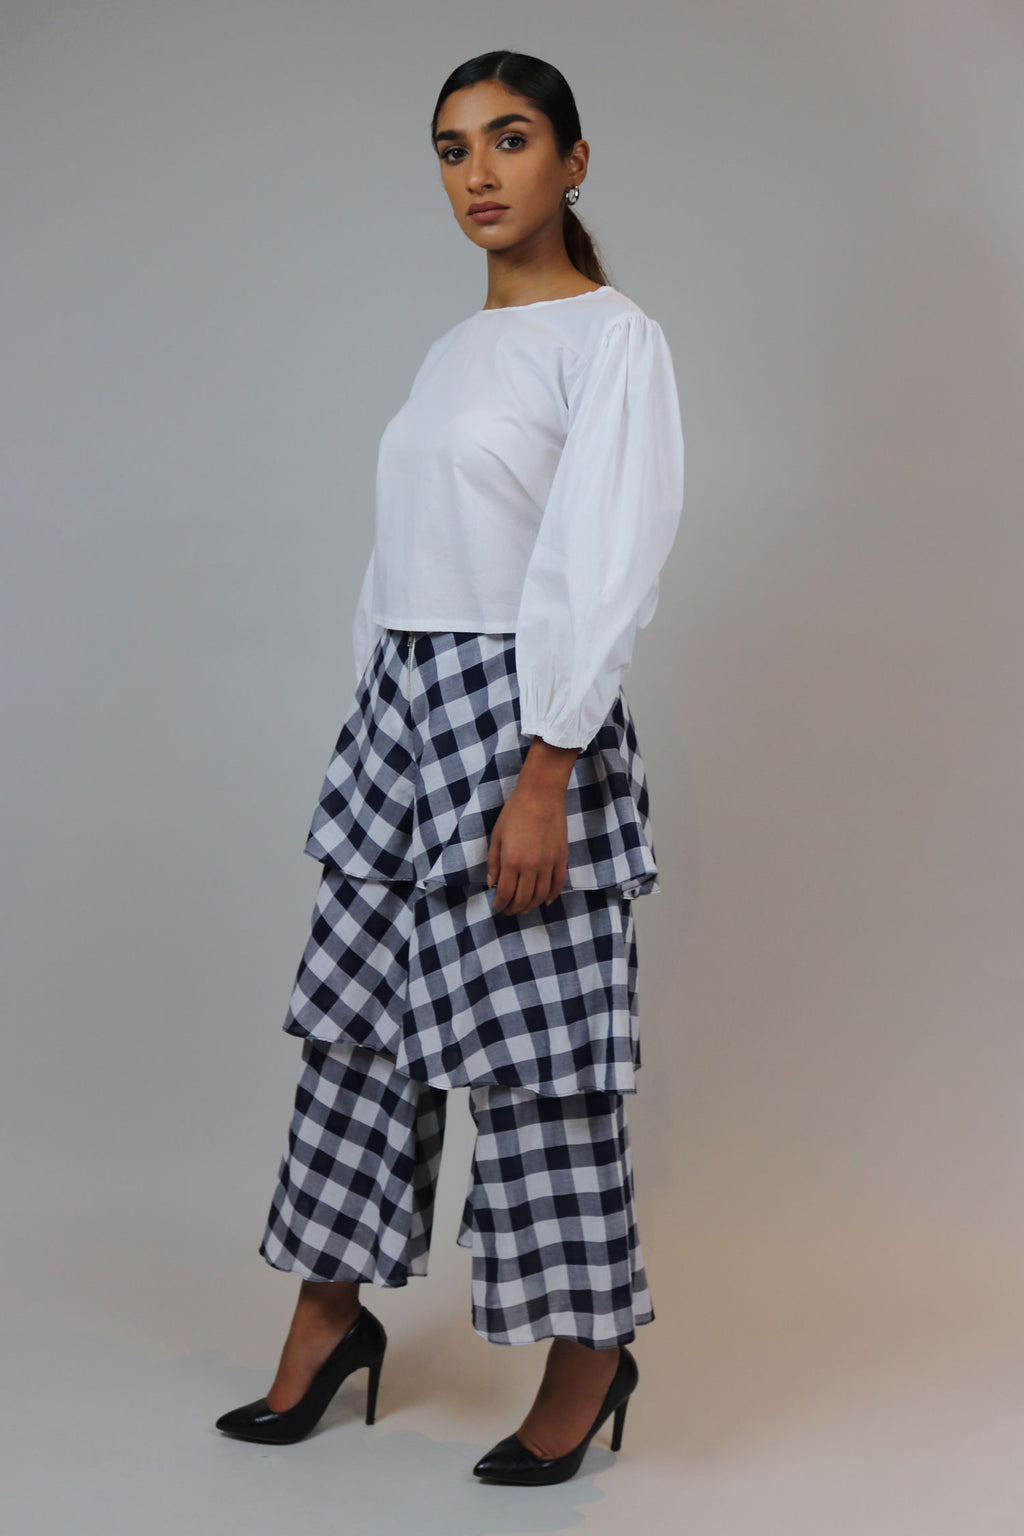 WANTS Gingham Ruffle Pants